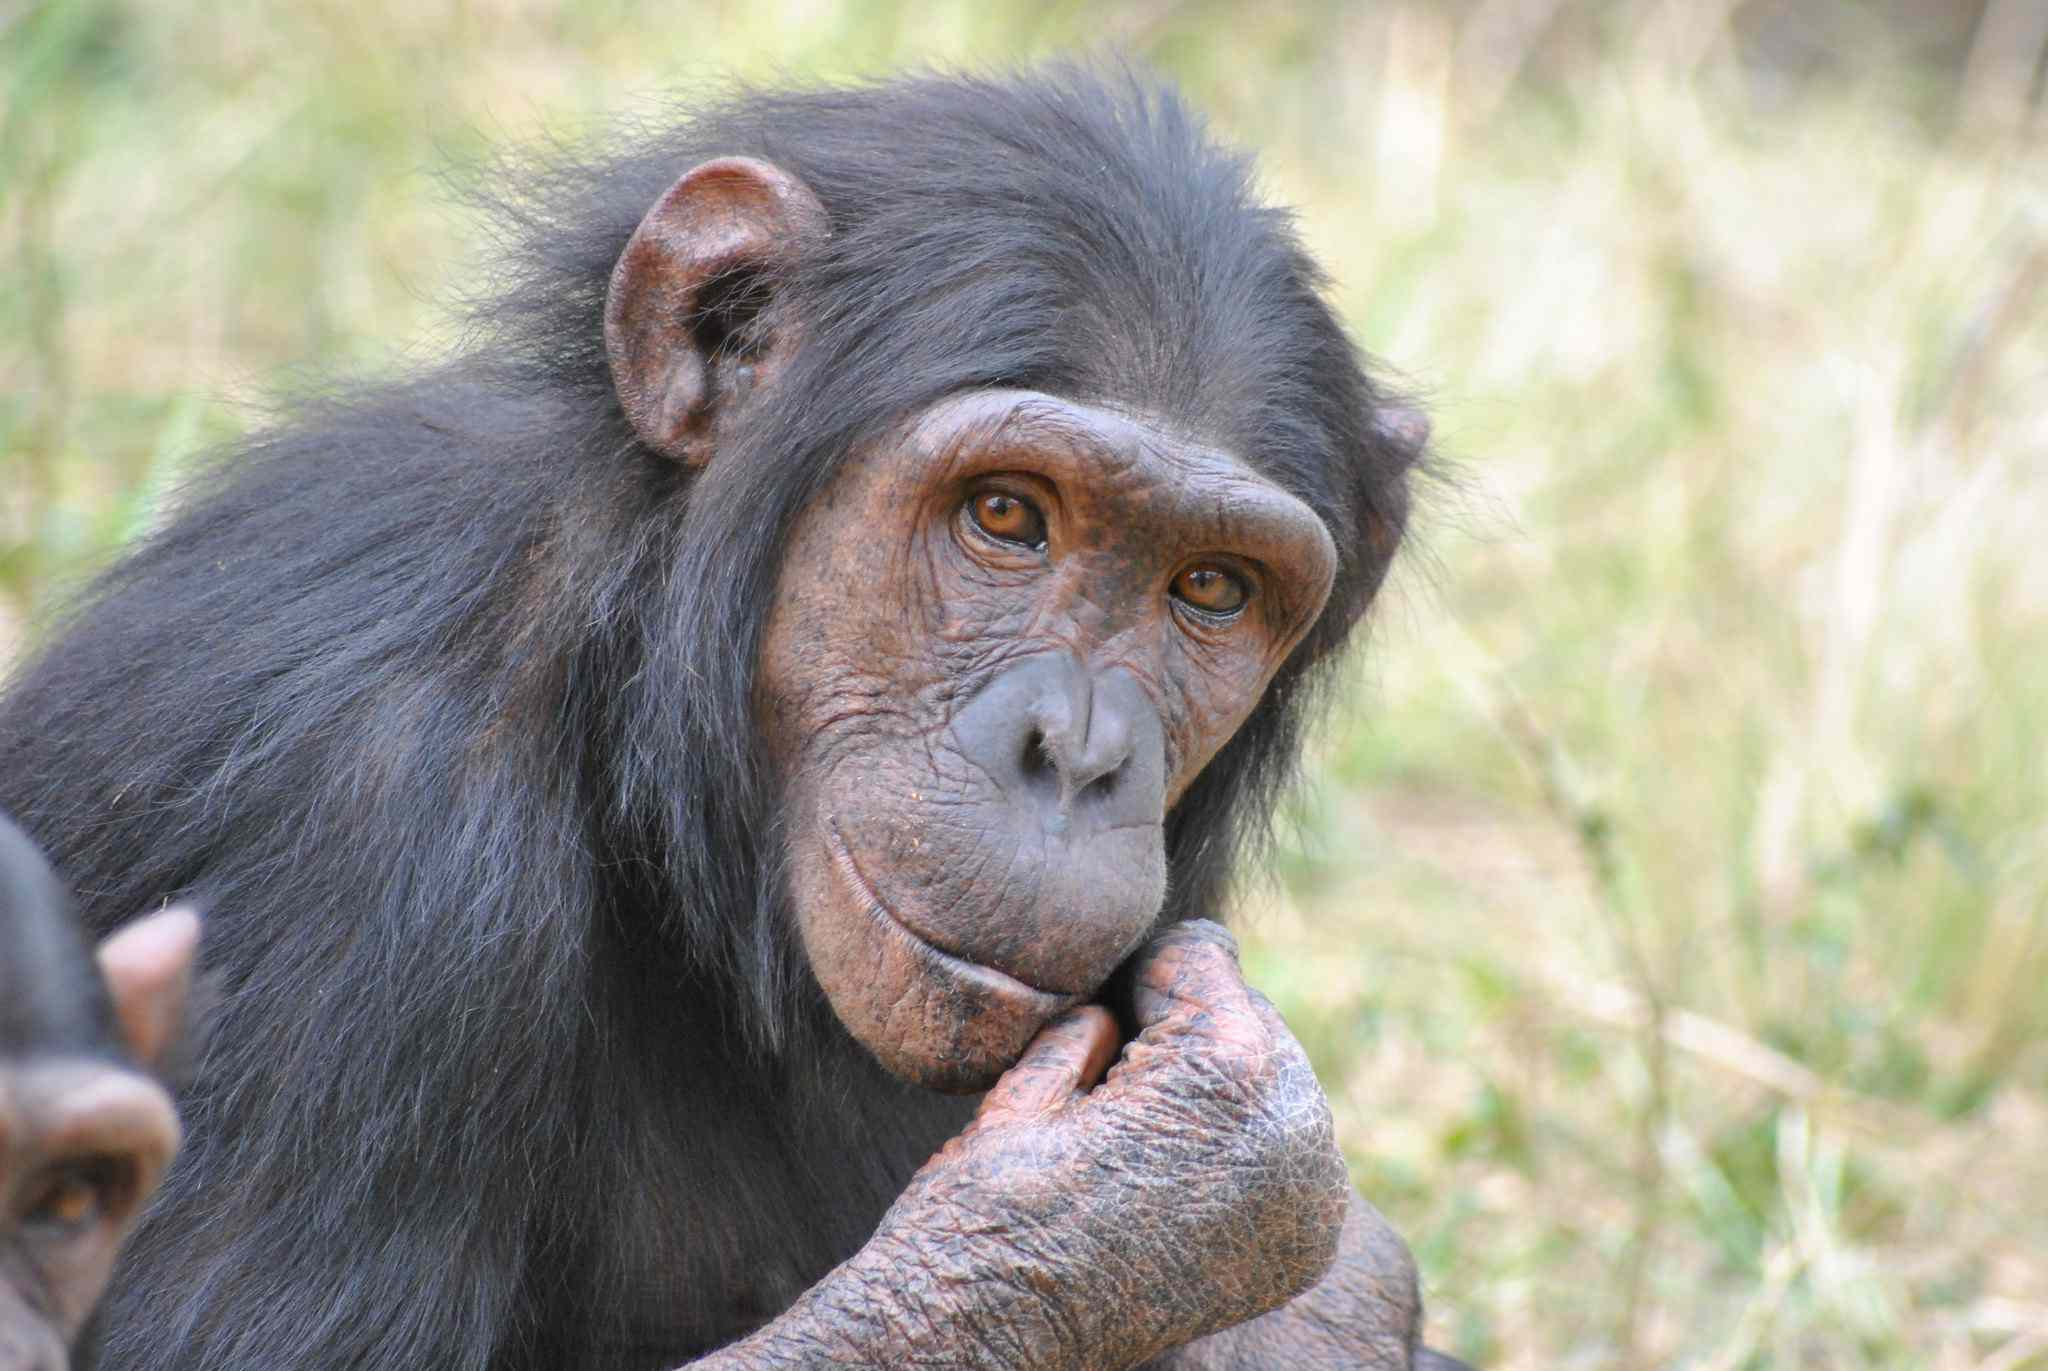 Chimpanzee looking at the camera in Chimp Eden in South Africa